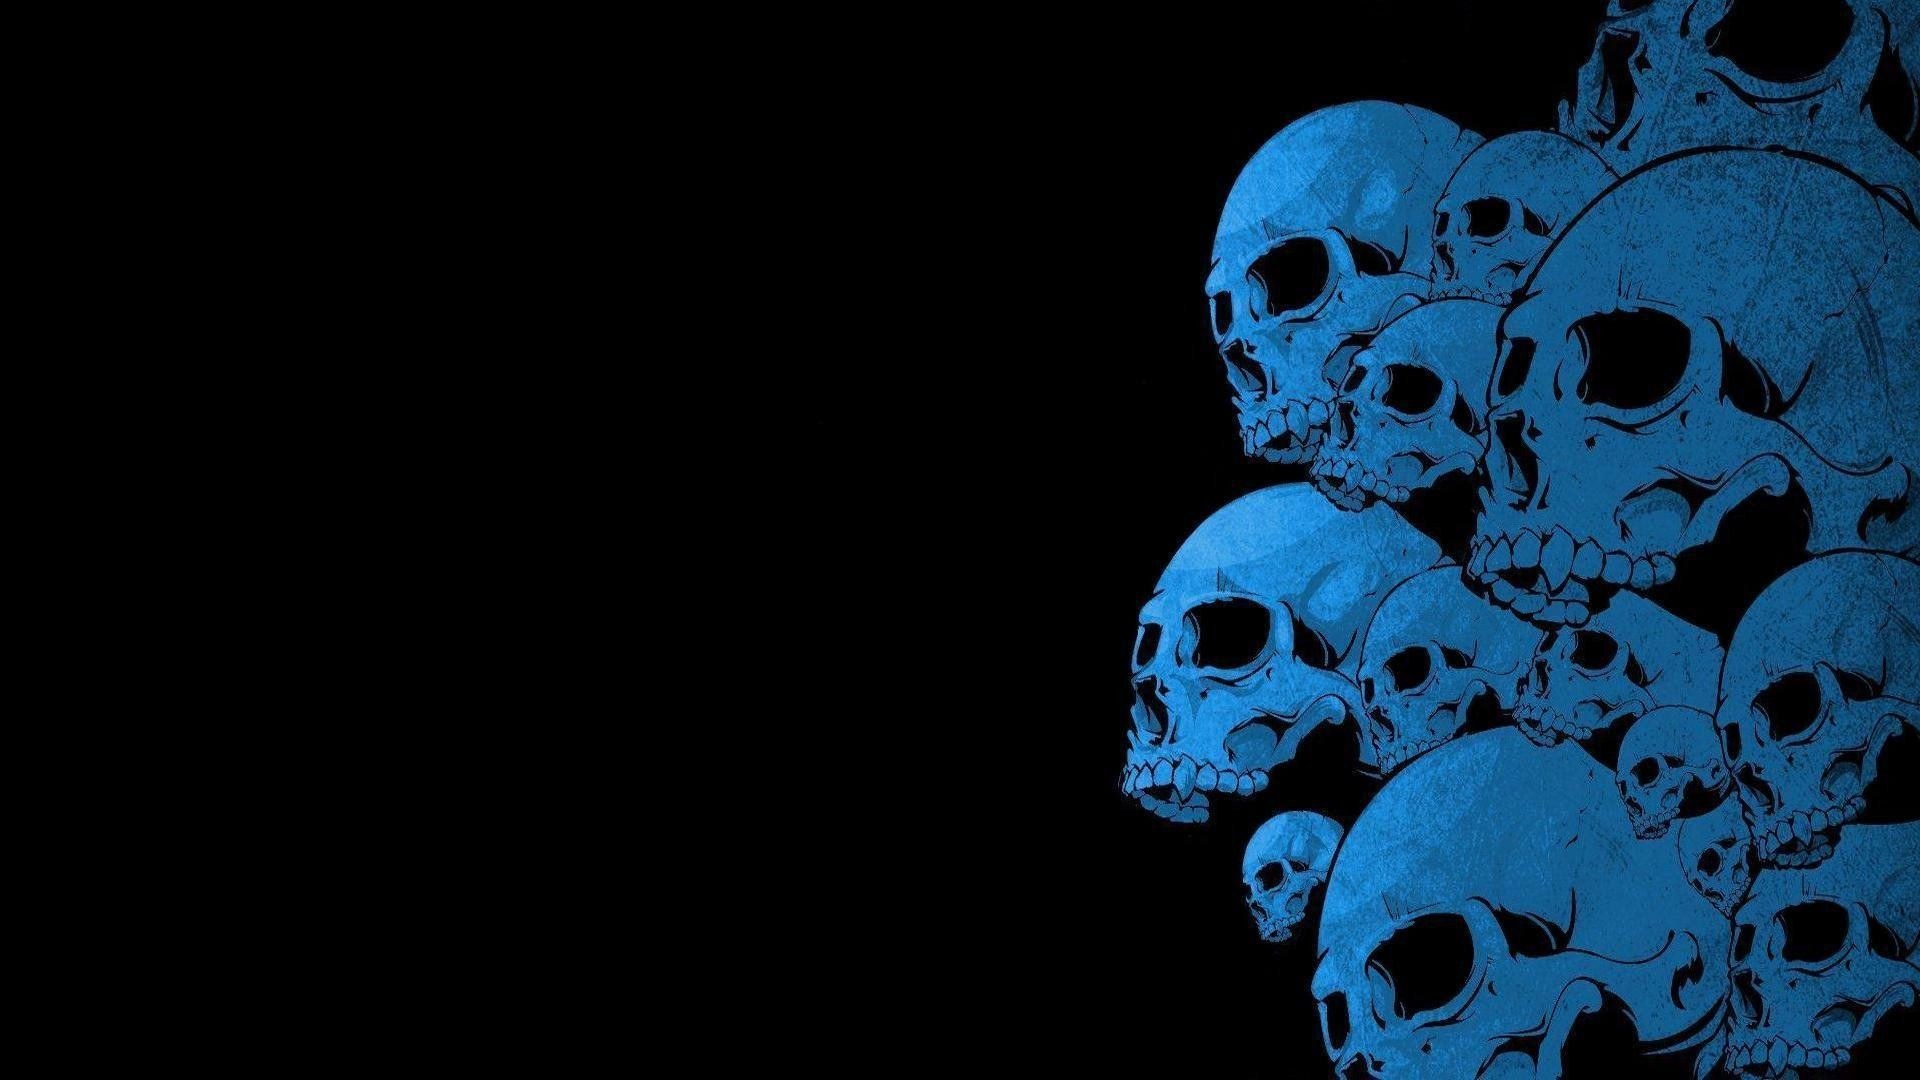 1920x1080 Punisher Skull Graphics | Punisher Skull Pics - HD Wallpapers .